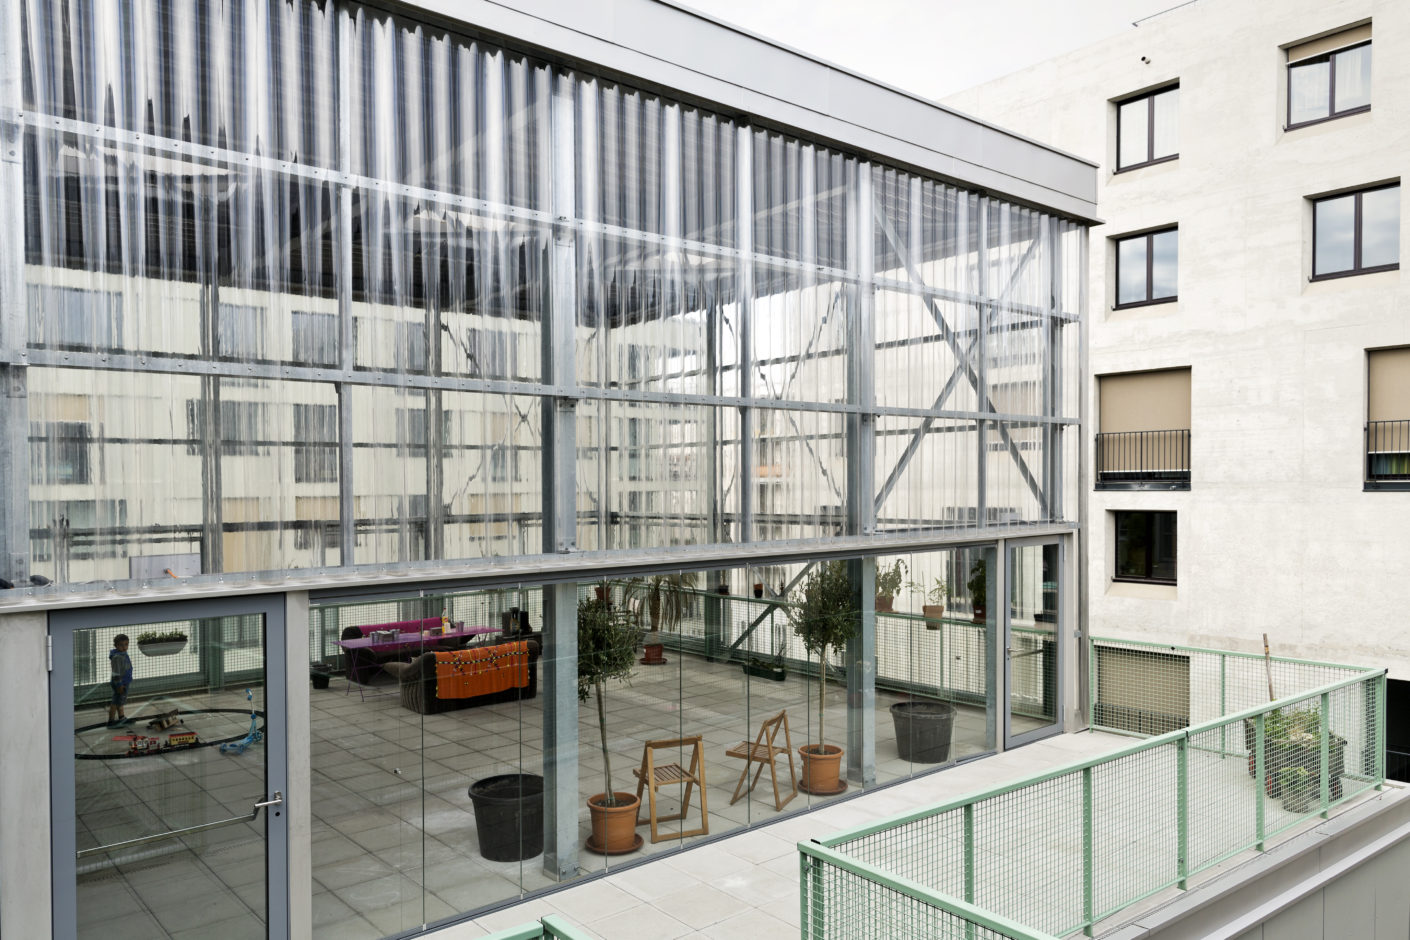 Community room House j cooperative settlement Mehr als Wohnen Zurich Pool architects Z